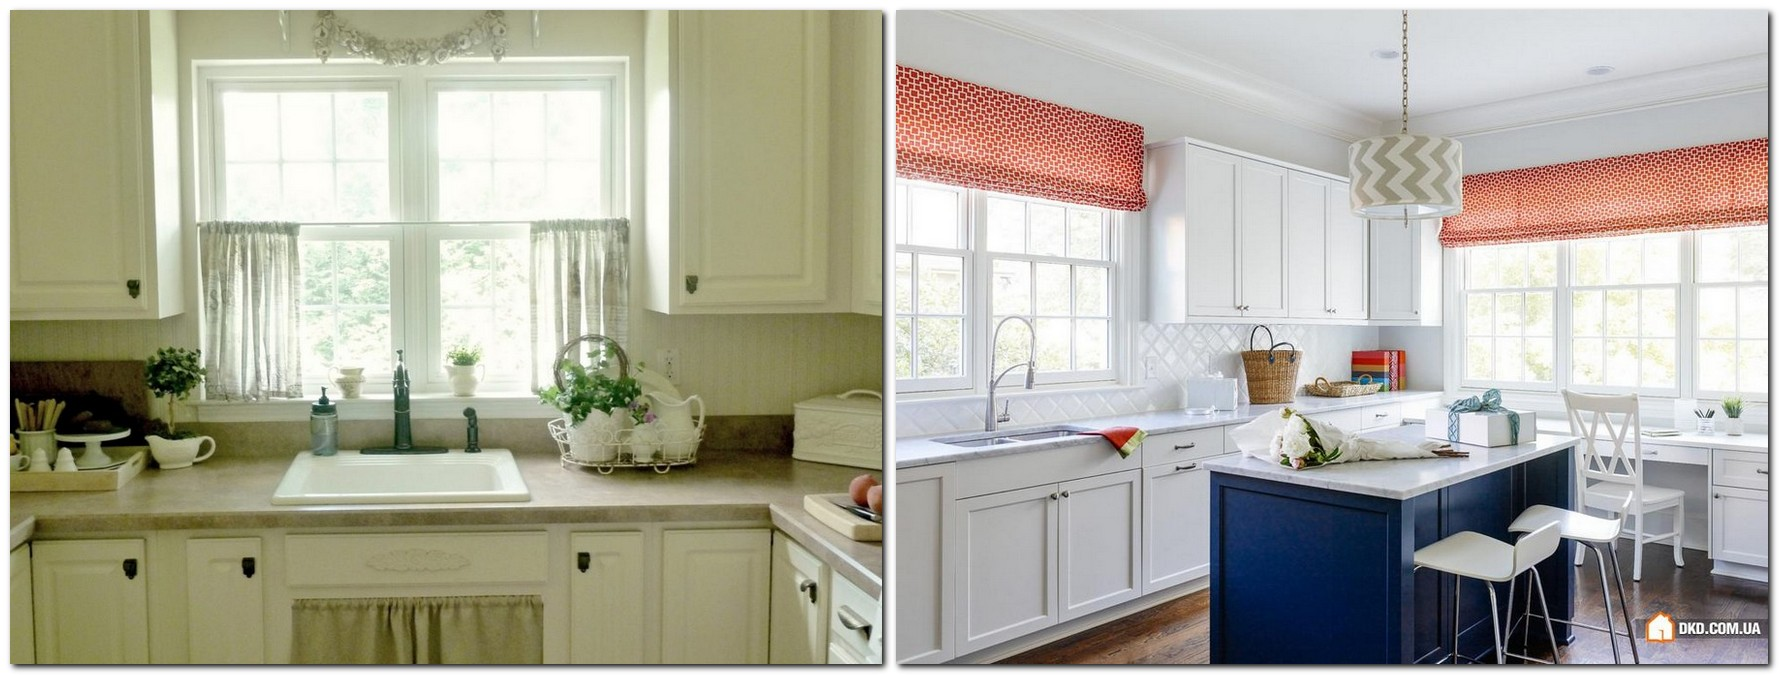 Delicieux 9 Cafe Style Curtains White Red In Kitchen